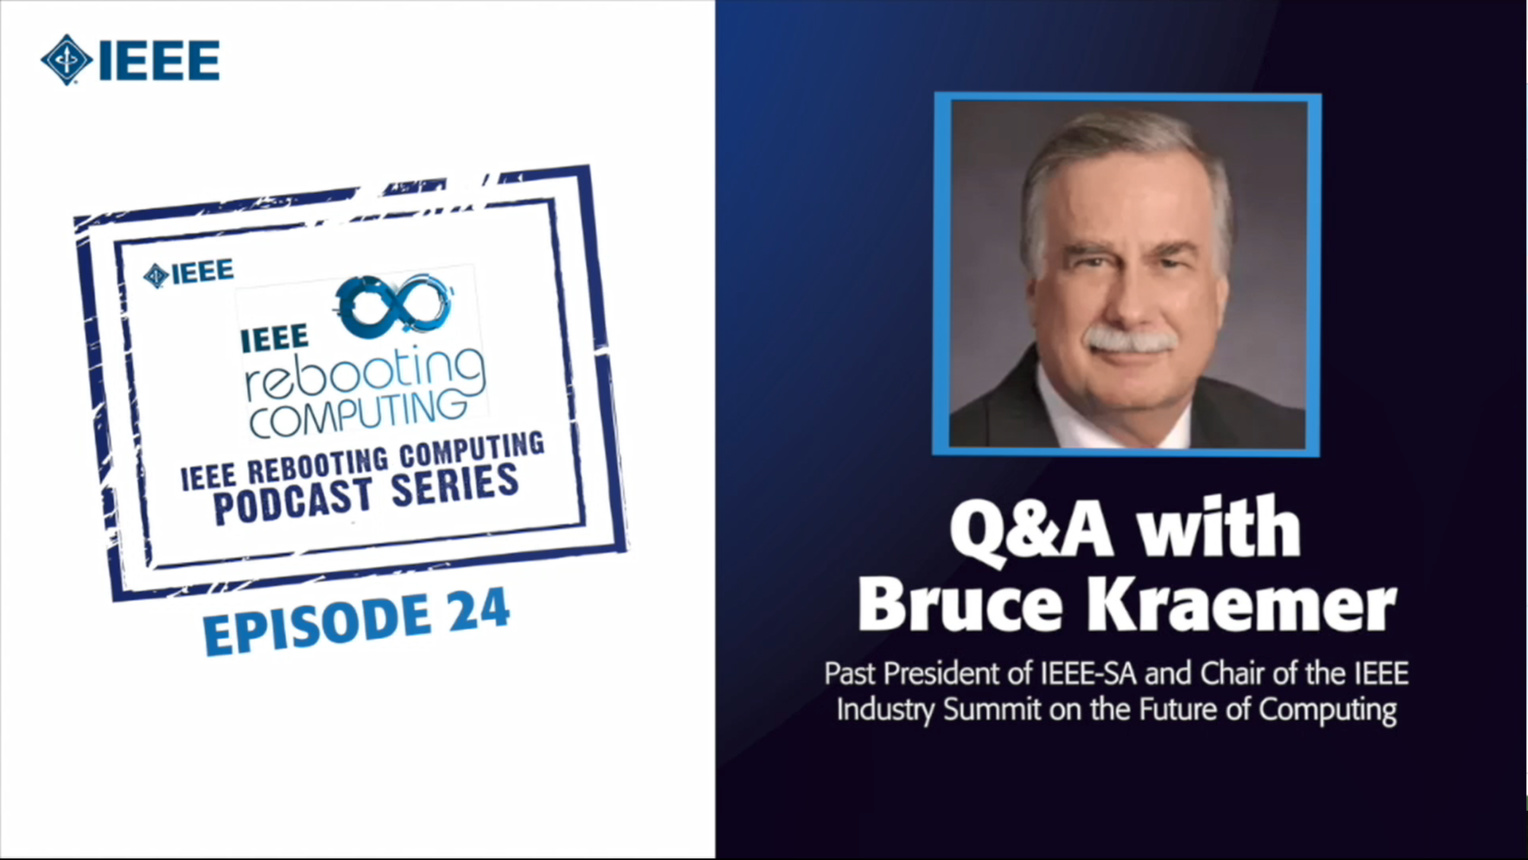 Q&A with Bruce Kraemer: IEEE Rebooting Computing Podcast, Episode 24